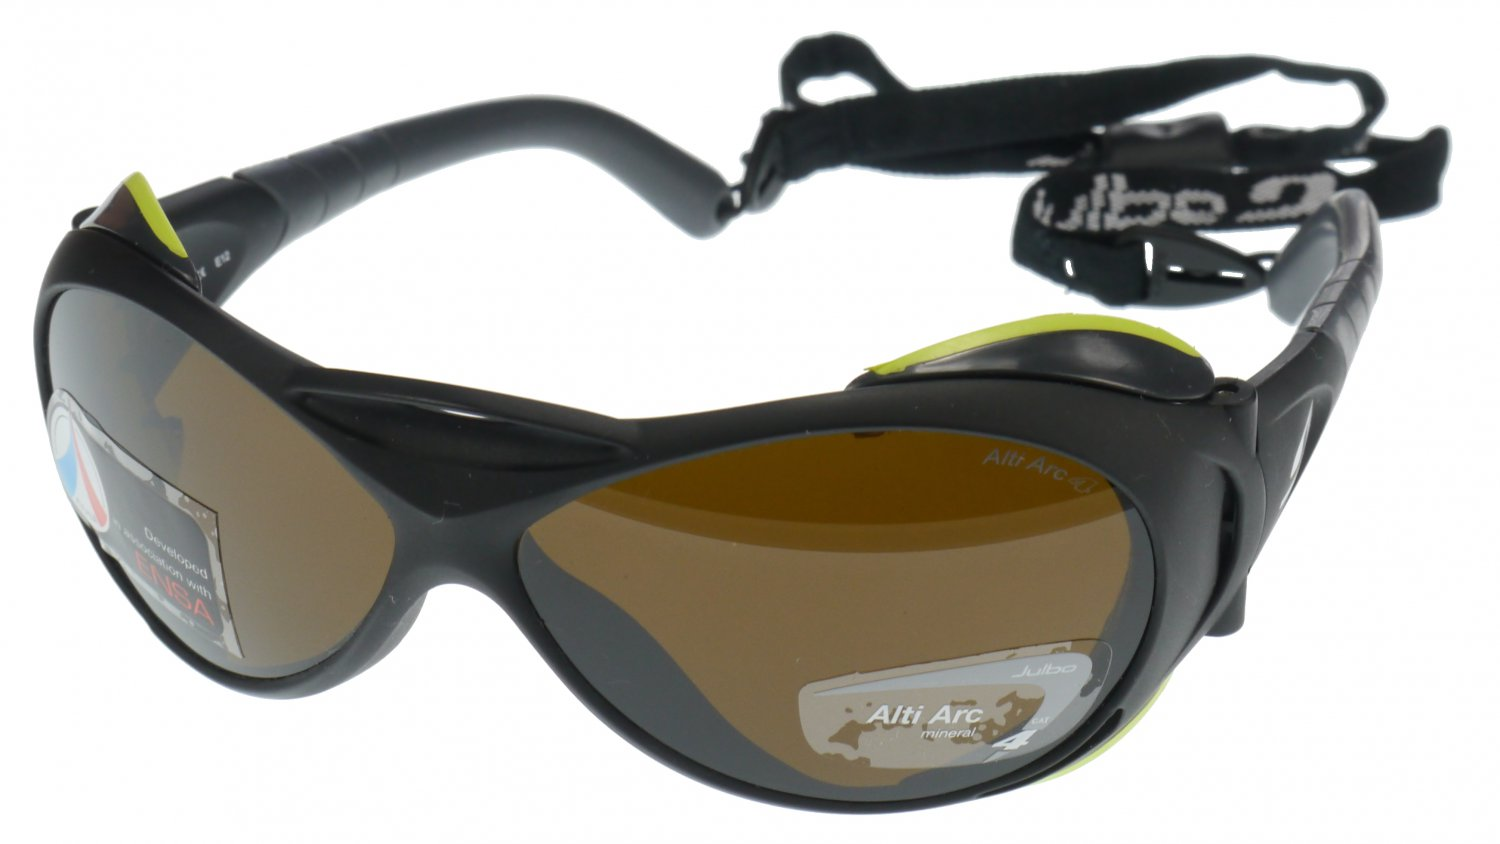 Julbo Explorer Heavy Duty Sunglass, Matt Black, Alti Arc Glass Category 4 Lens (4% LTF) - Medium Fit